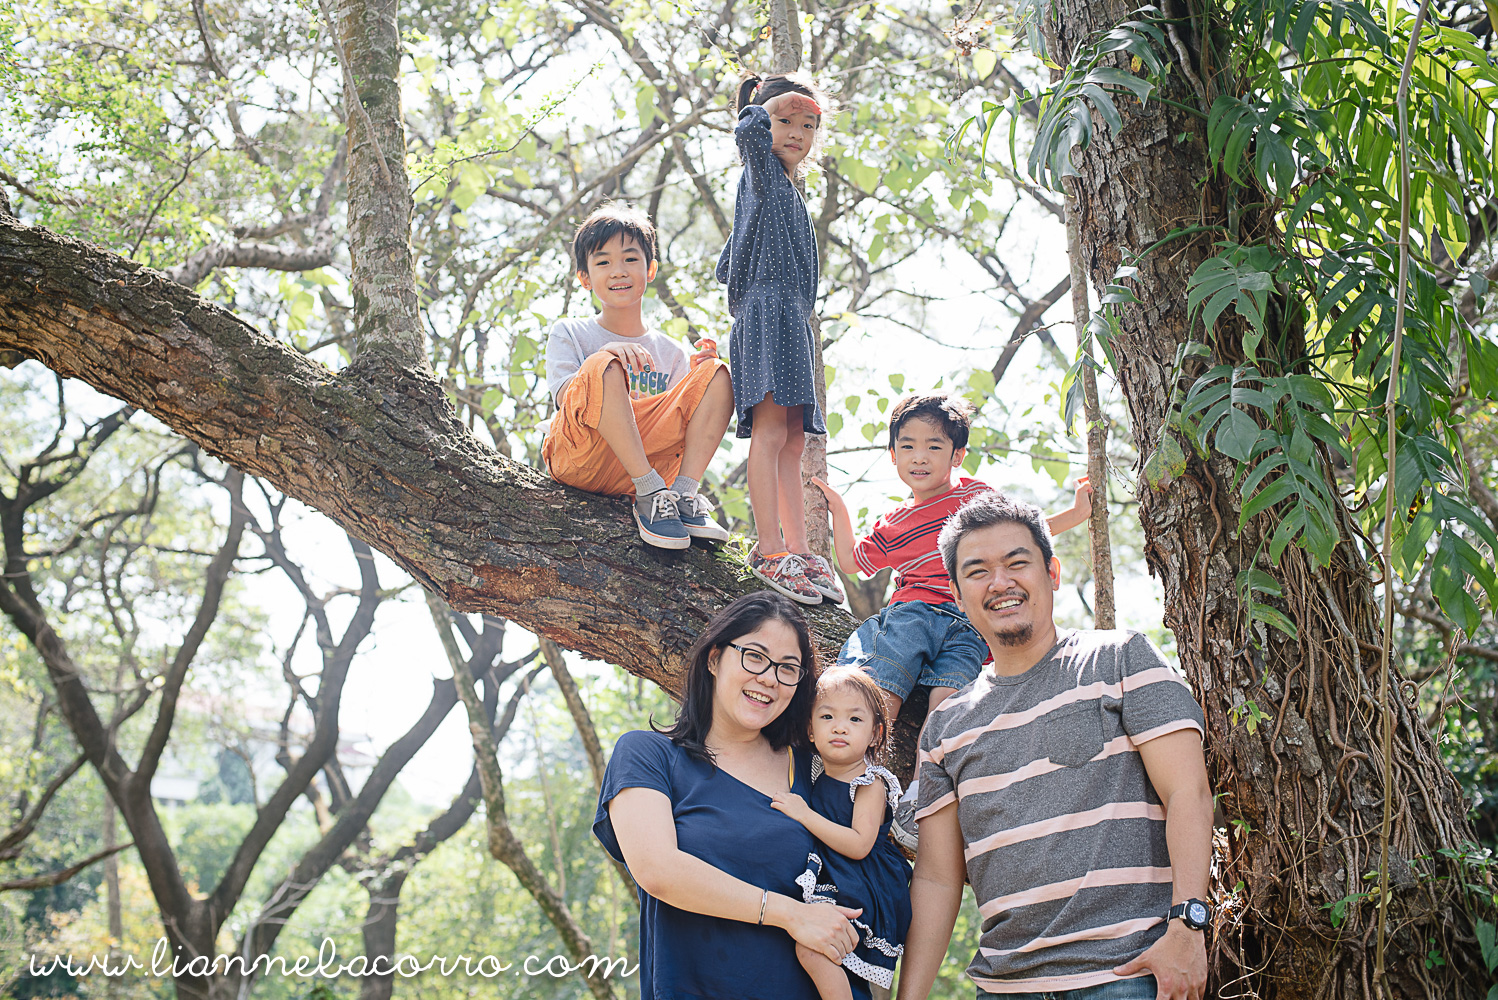 Photograpy by Lianne Bacorro - A Day in the Life Family Session - Roldan Family - edited-177